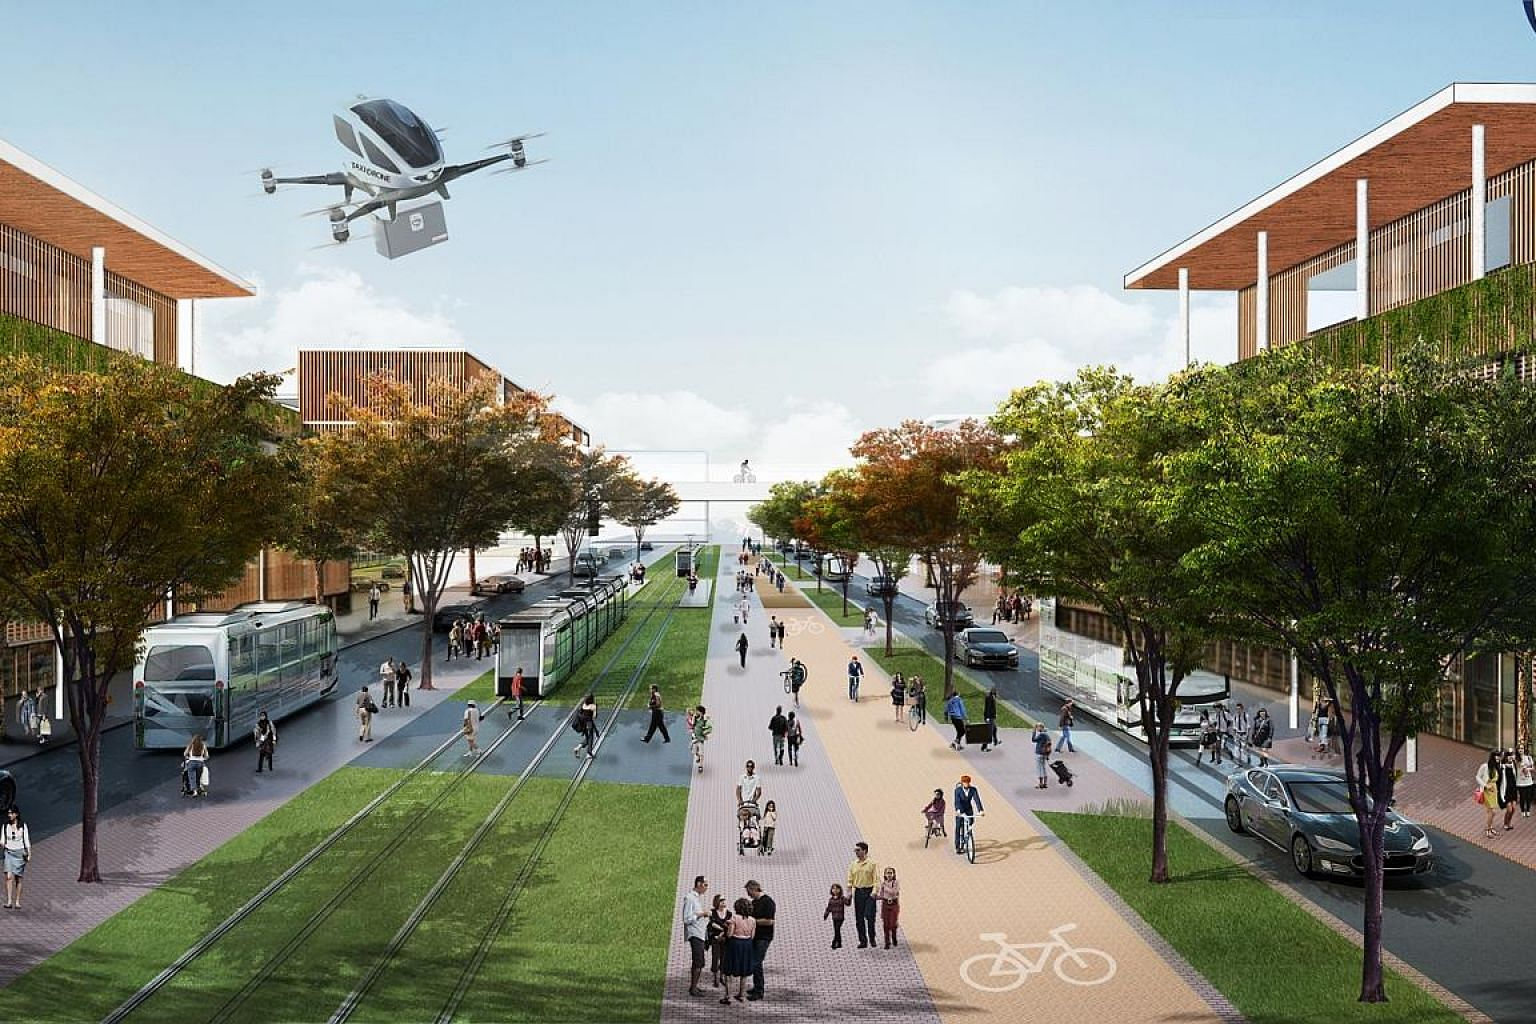 Architectural and urban planning firm Urban+'s winning entry for Indonesia's new capital (artist's impression above) includes plans for mass transit consisting of an electric tram network that can be replaced with an MRT network or a light rail later